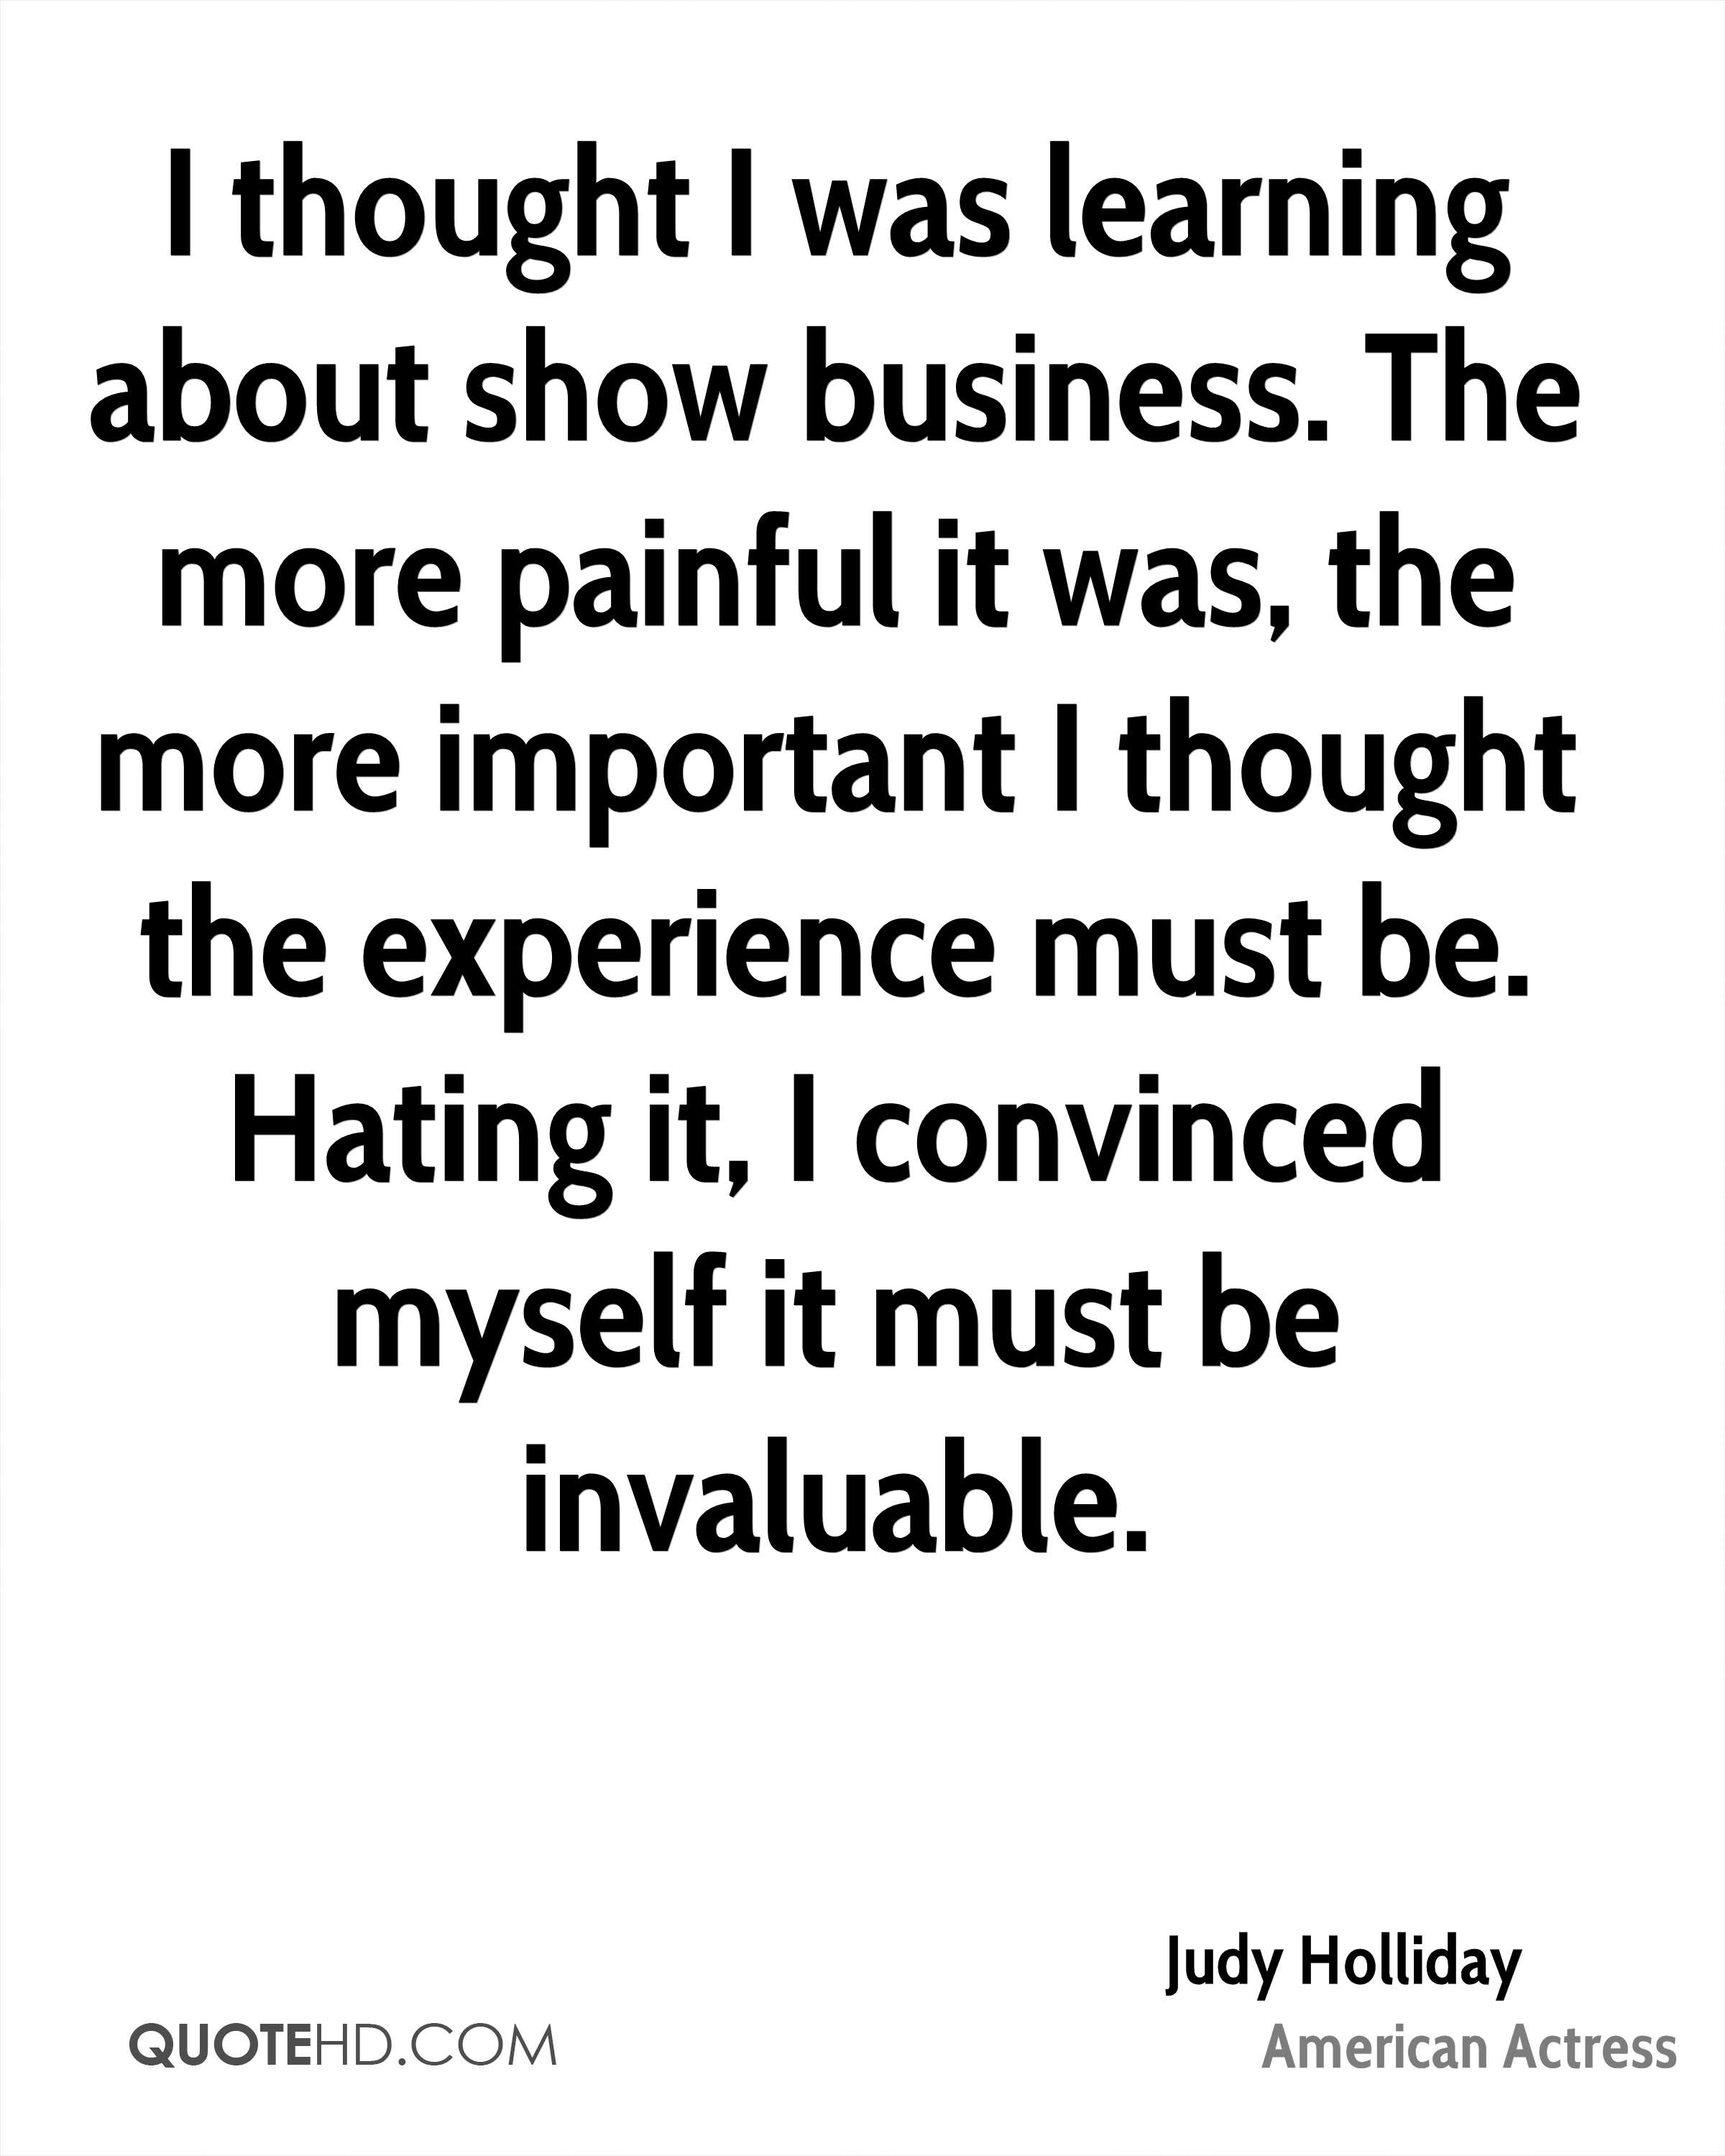 I thought I was learning about show business. The more painful it was, the more important I thought the experience must be. Hating it, I convinced myself it must be invaluable.